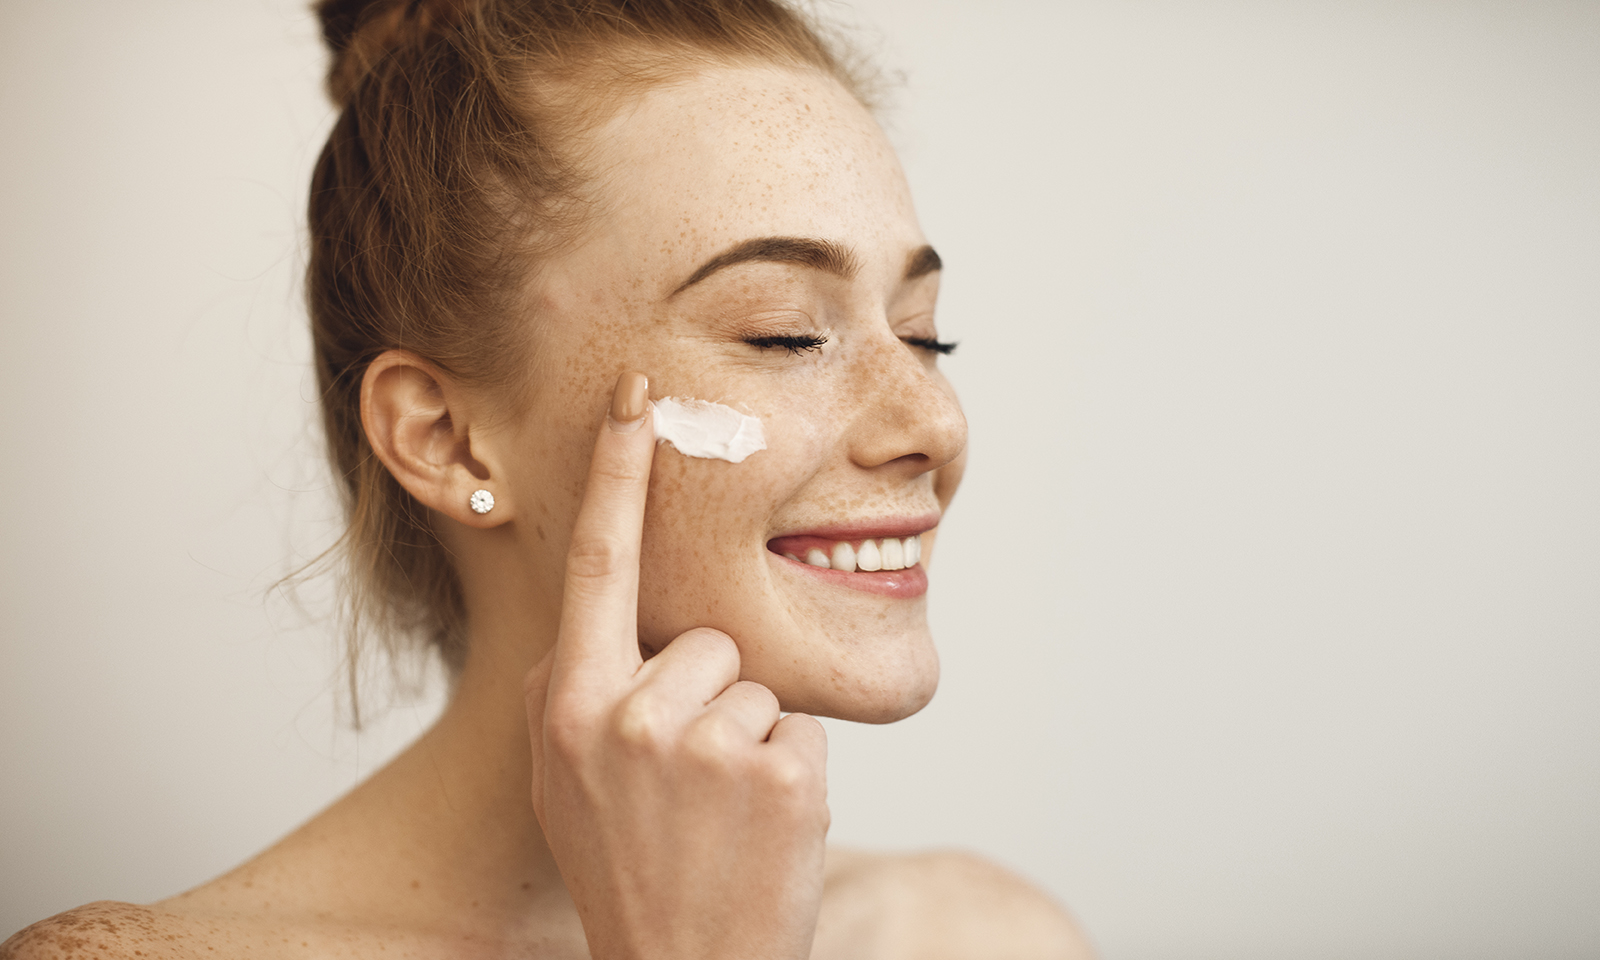 beauty-trends-ofo2-21-freckled-woman-applying-skin-cream